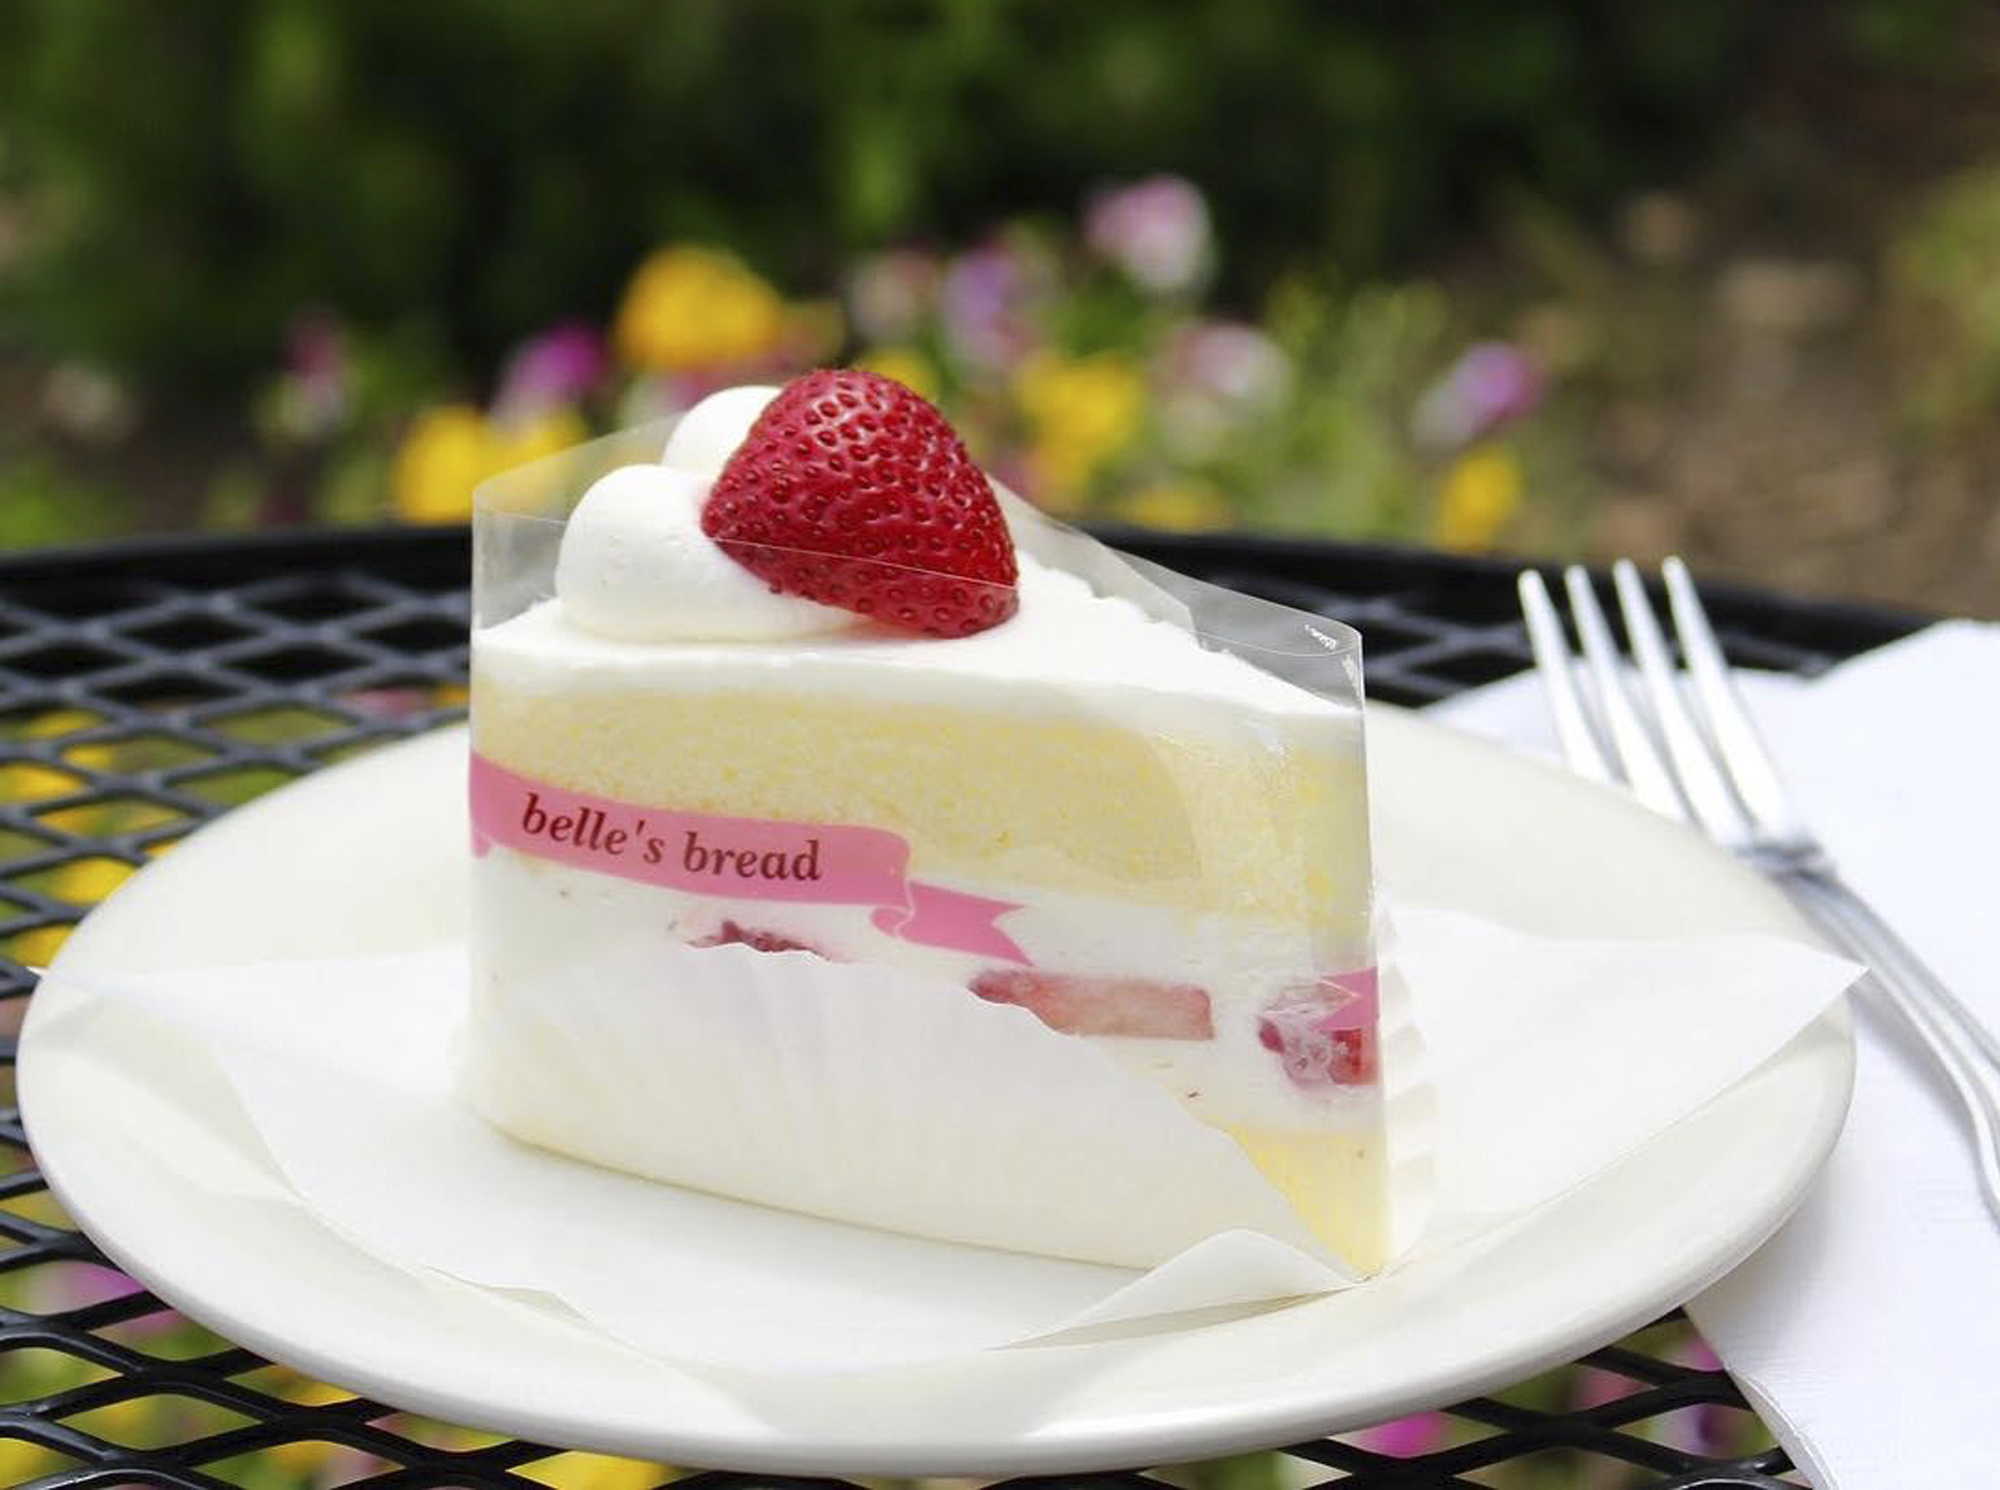 Strawberry cheesecake from Belle's